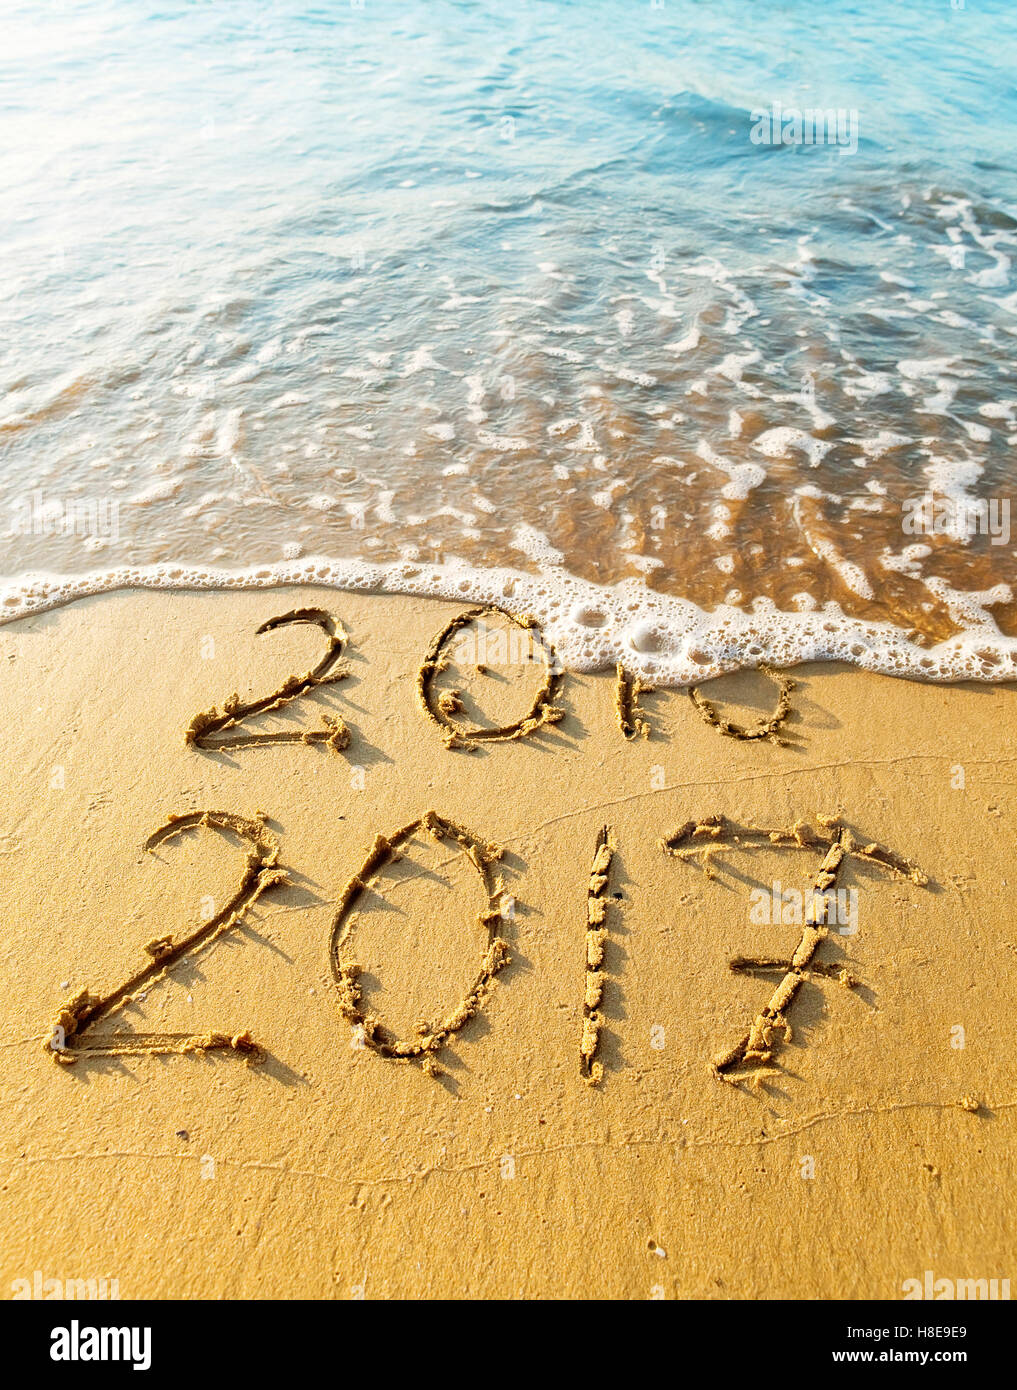 New Year 2017 is coming concept - inscription 2016 and 2017 on a beach sand, the wave is covering digits 2016. - Stock Image